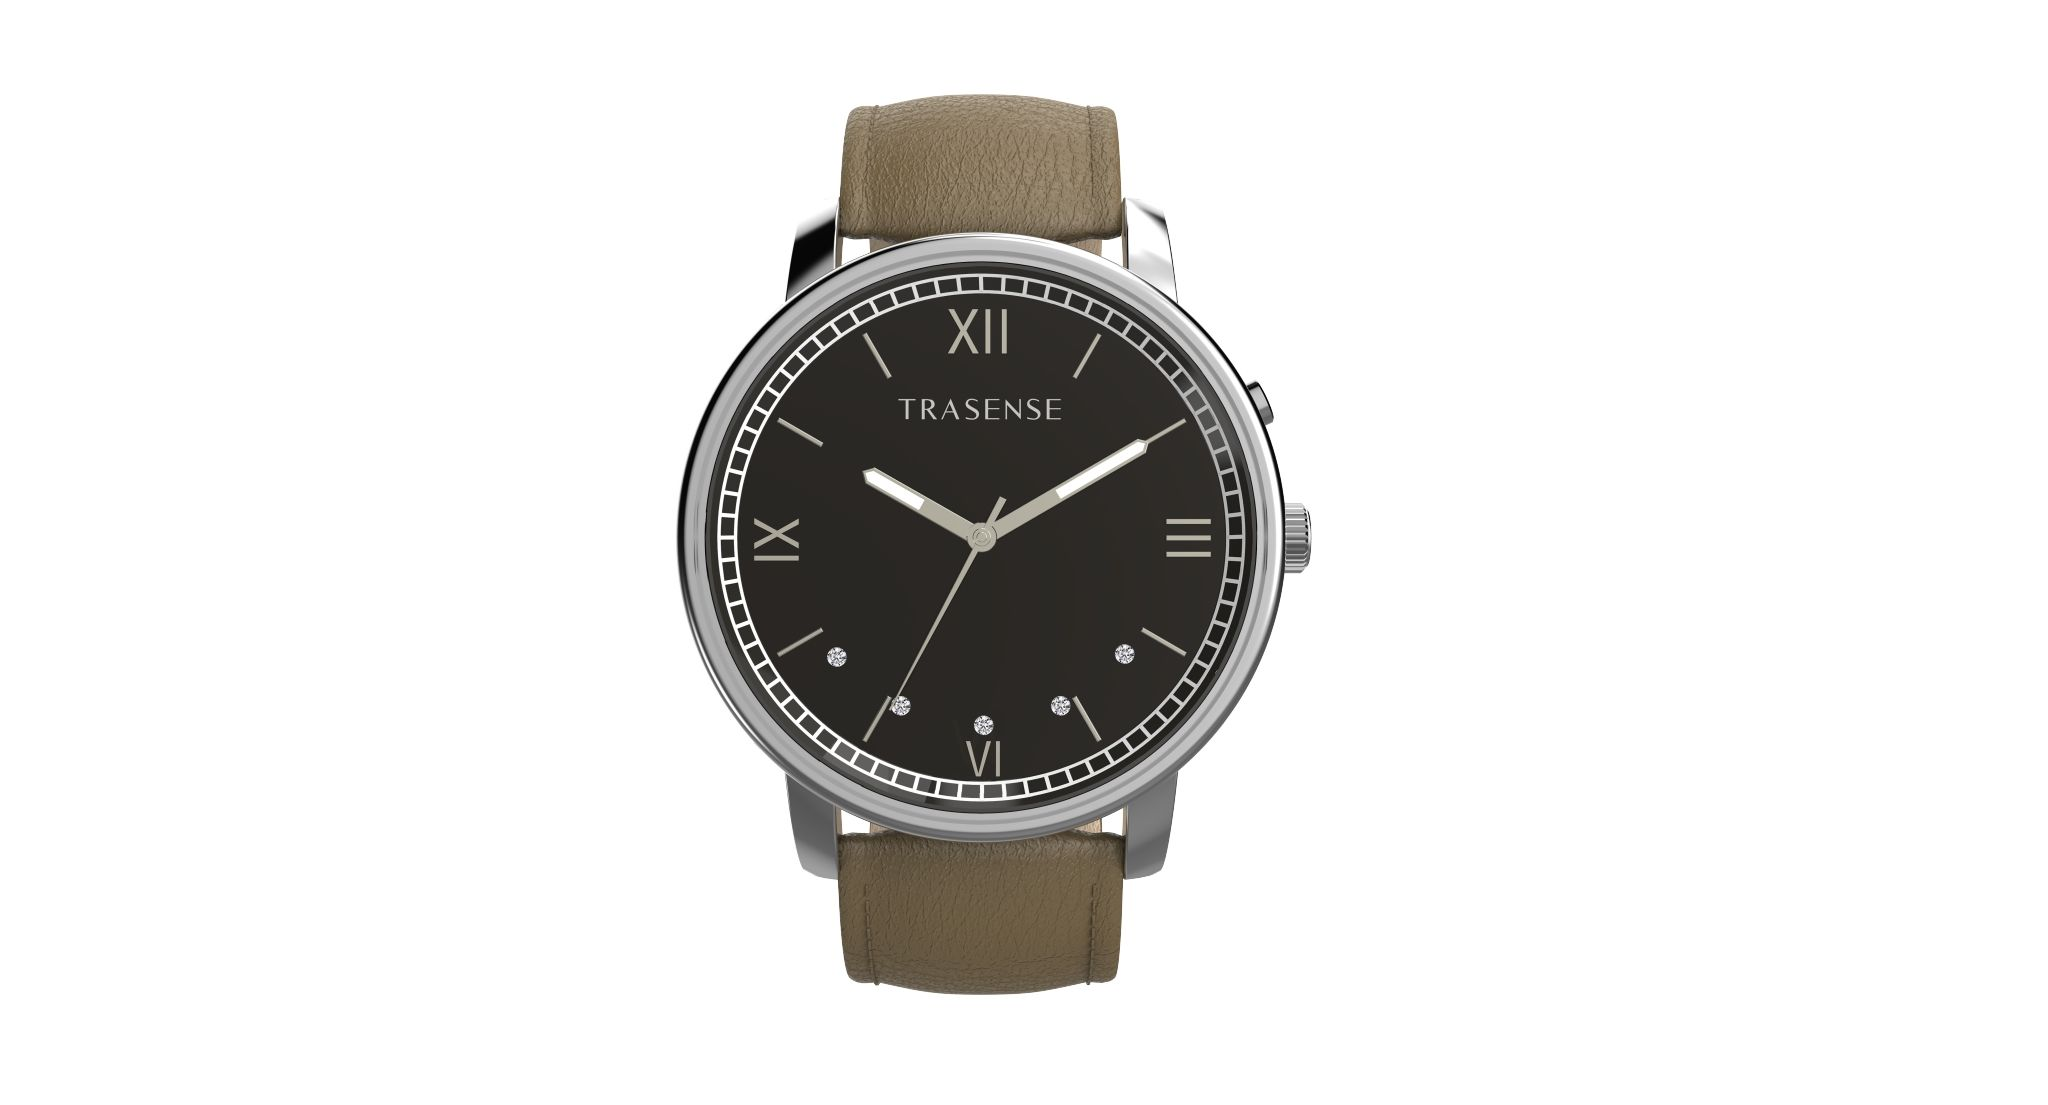 Trasense S03 NEW PRODUCT! Smart quartz watch especially design for women fashion. Do you want it? #Smartwatch